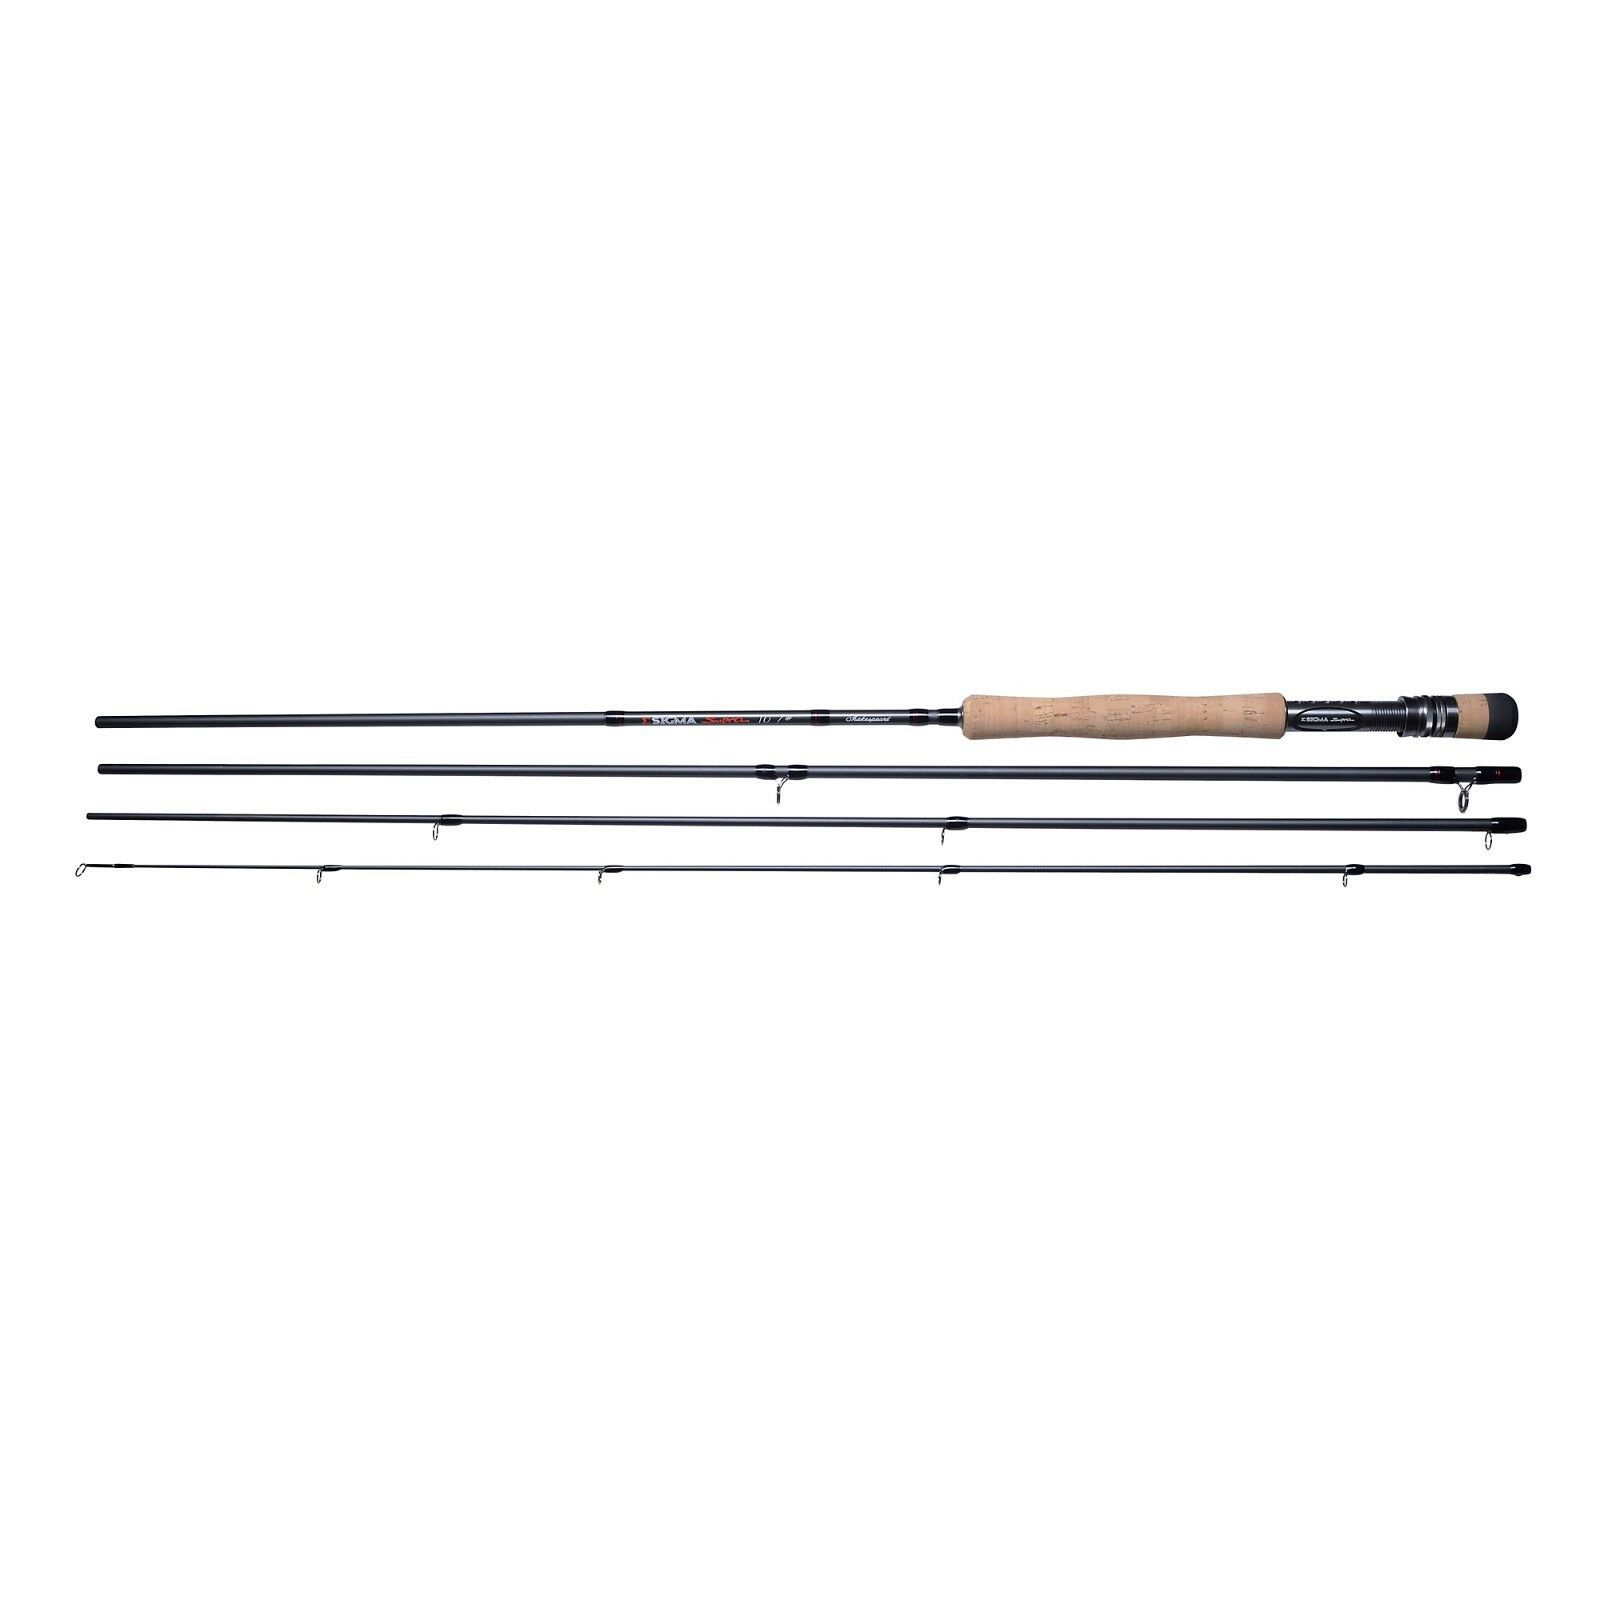 Shakespeare Sigma Sigma Sigma 4 Piece Supra Trout / Salmon Fly Fishing Rods 7ft - 11ft 916f61